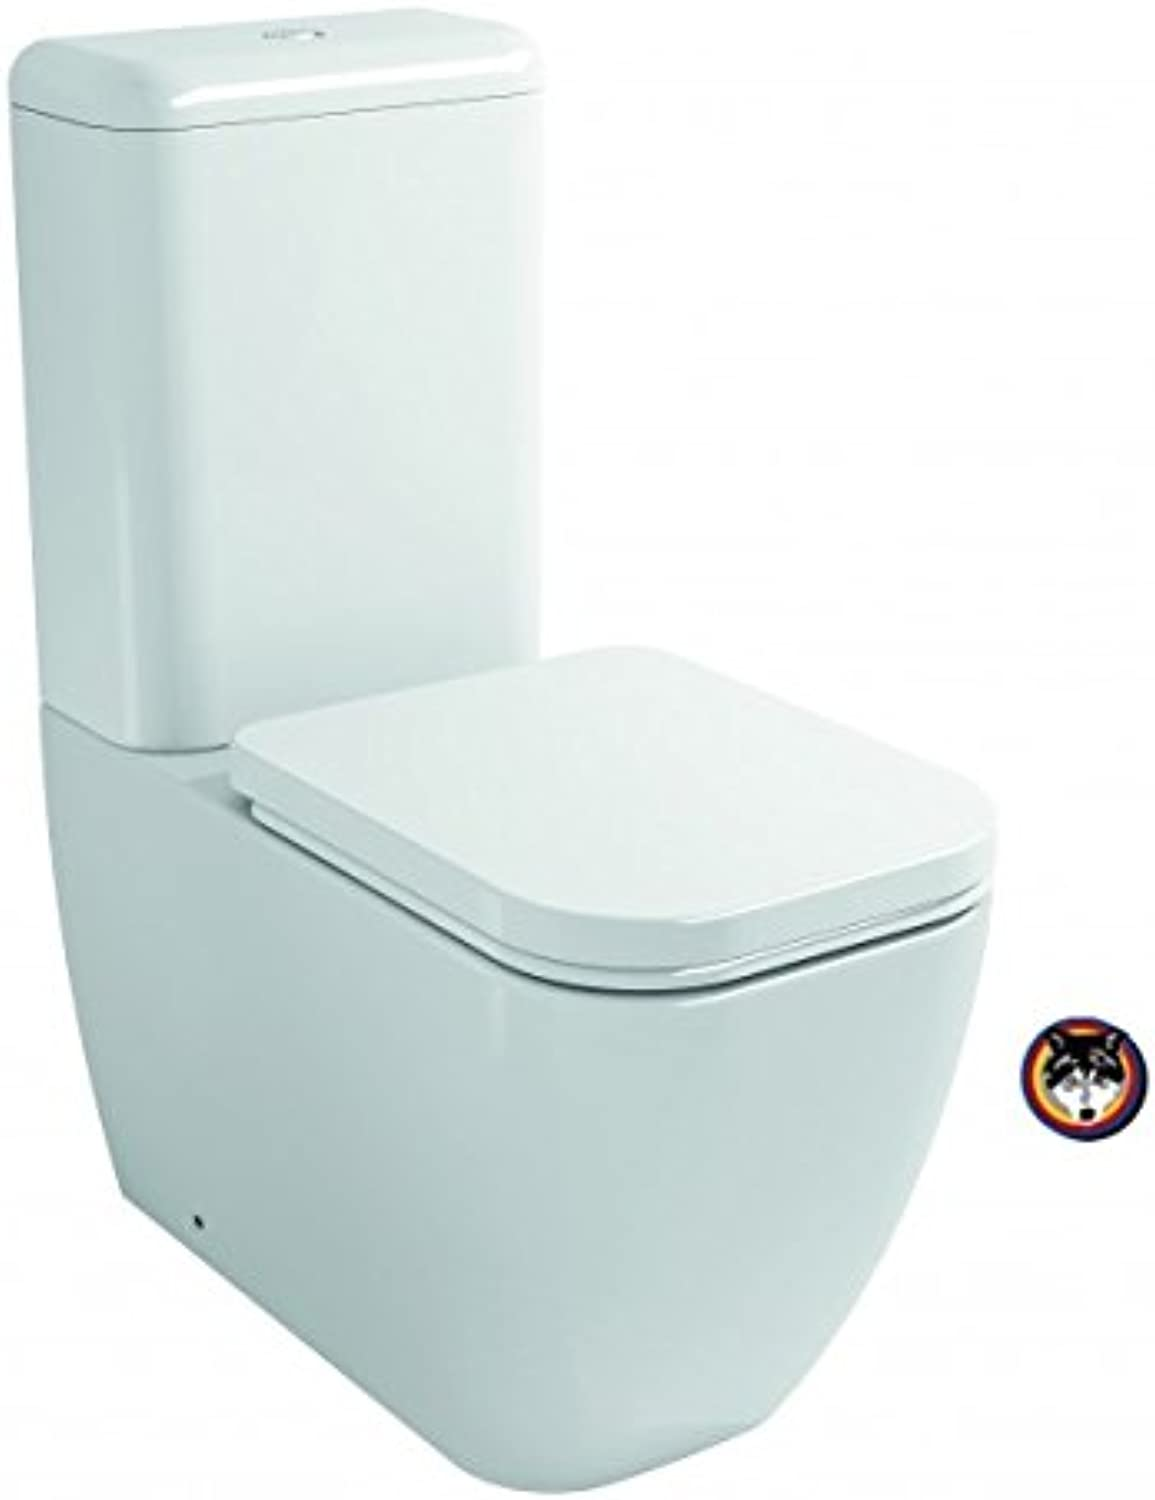 Sterling Stand-WC Kombination Toilette mit Softclose-Sitz TakeOff